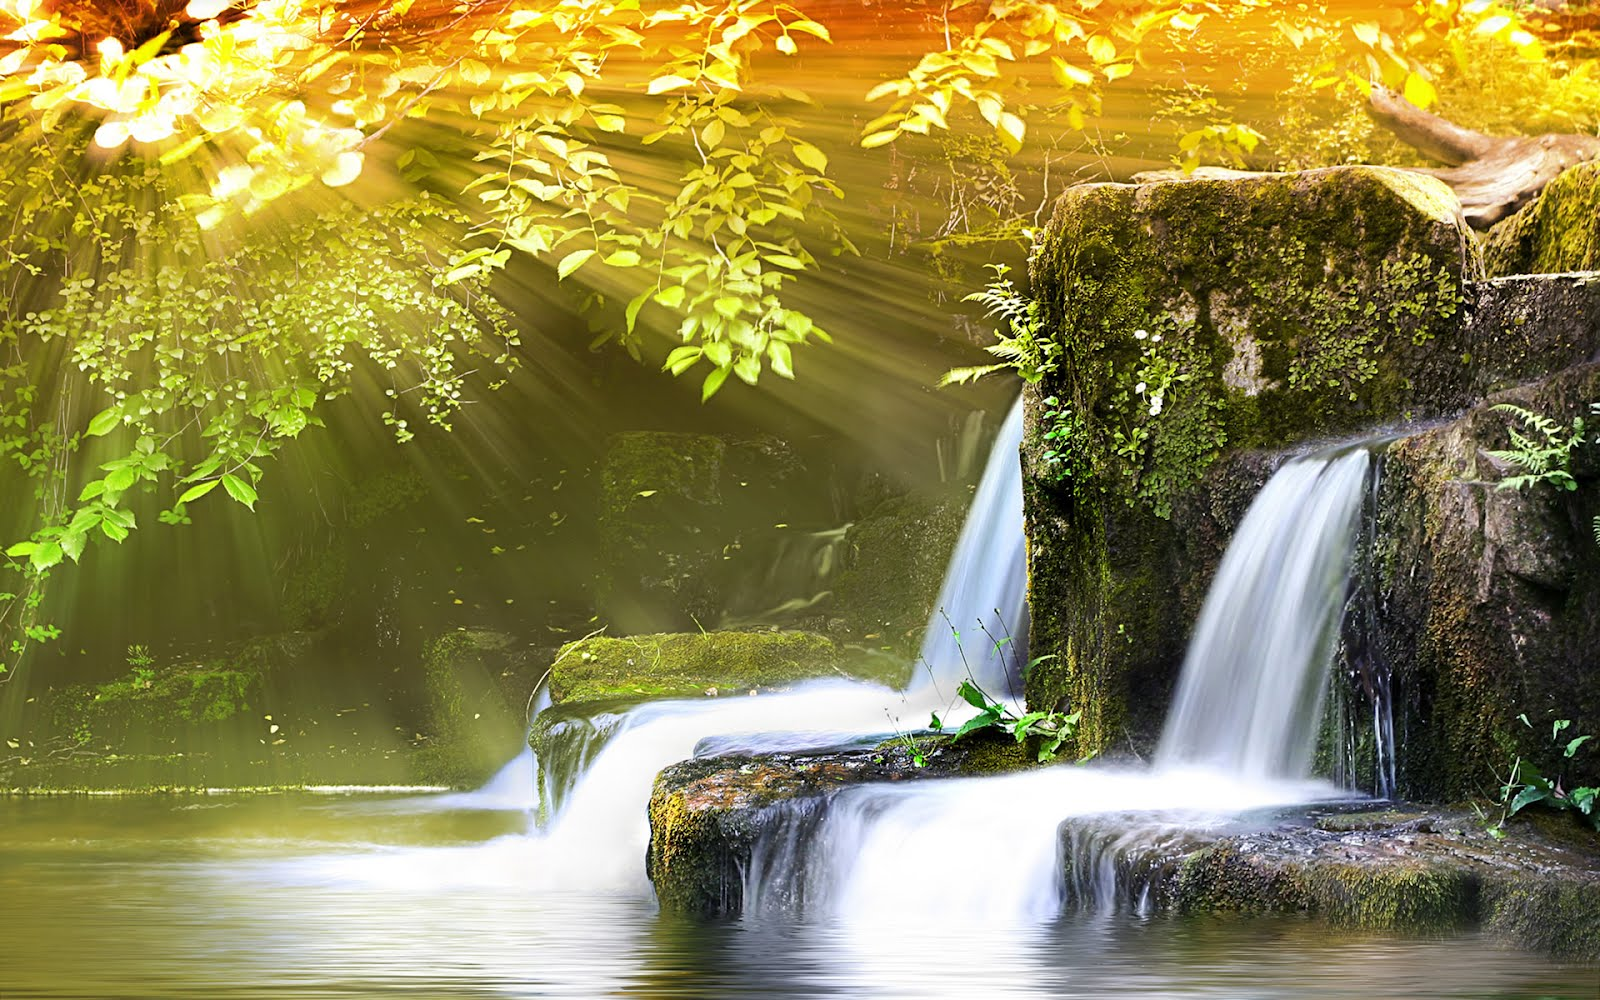 Wallpapers Nature Spring - Wallpapers HD